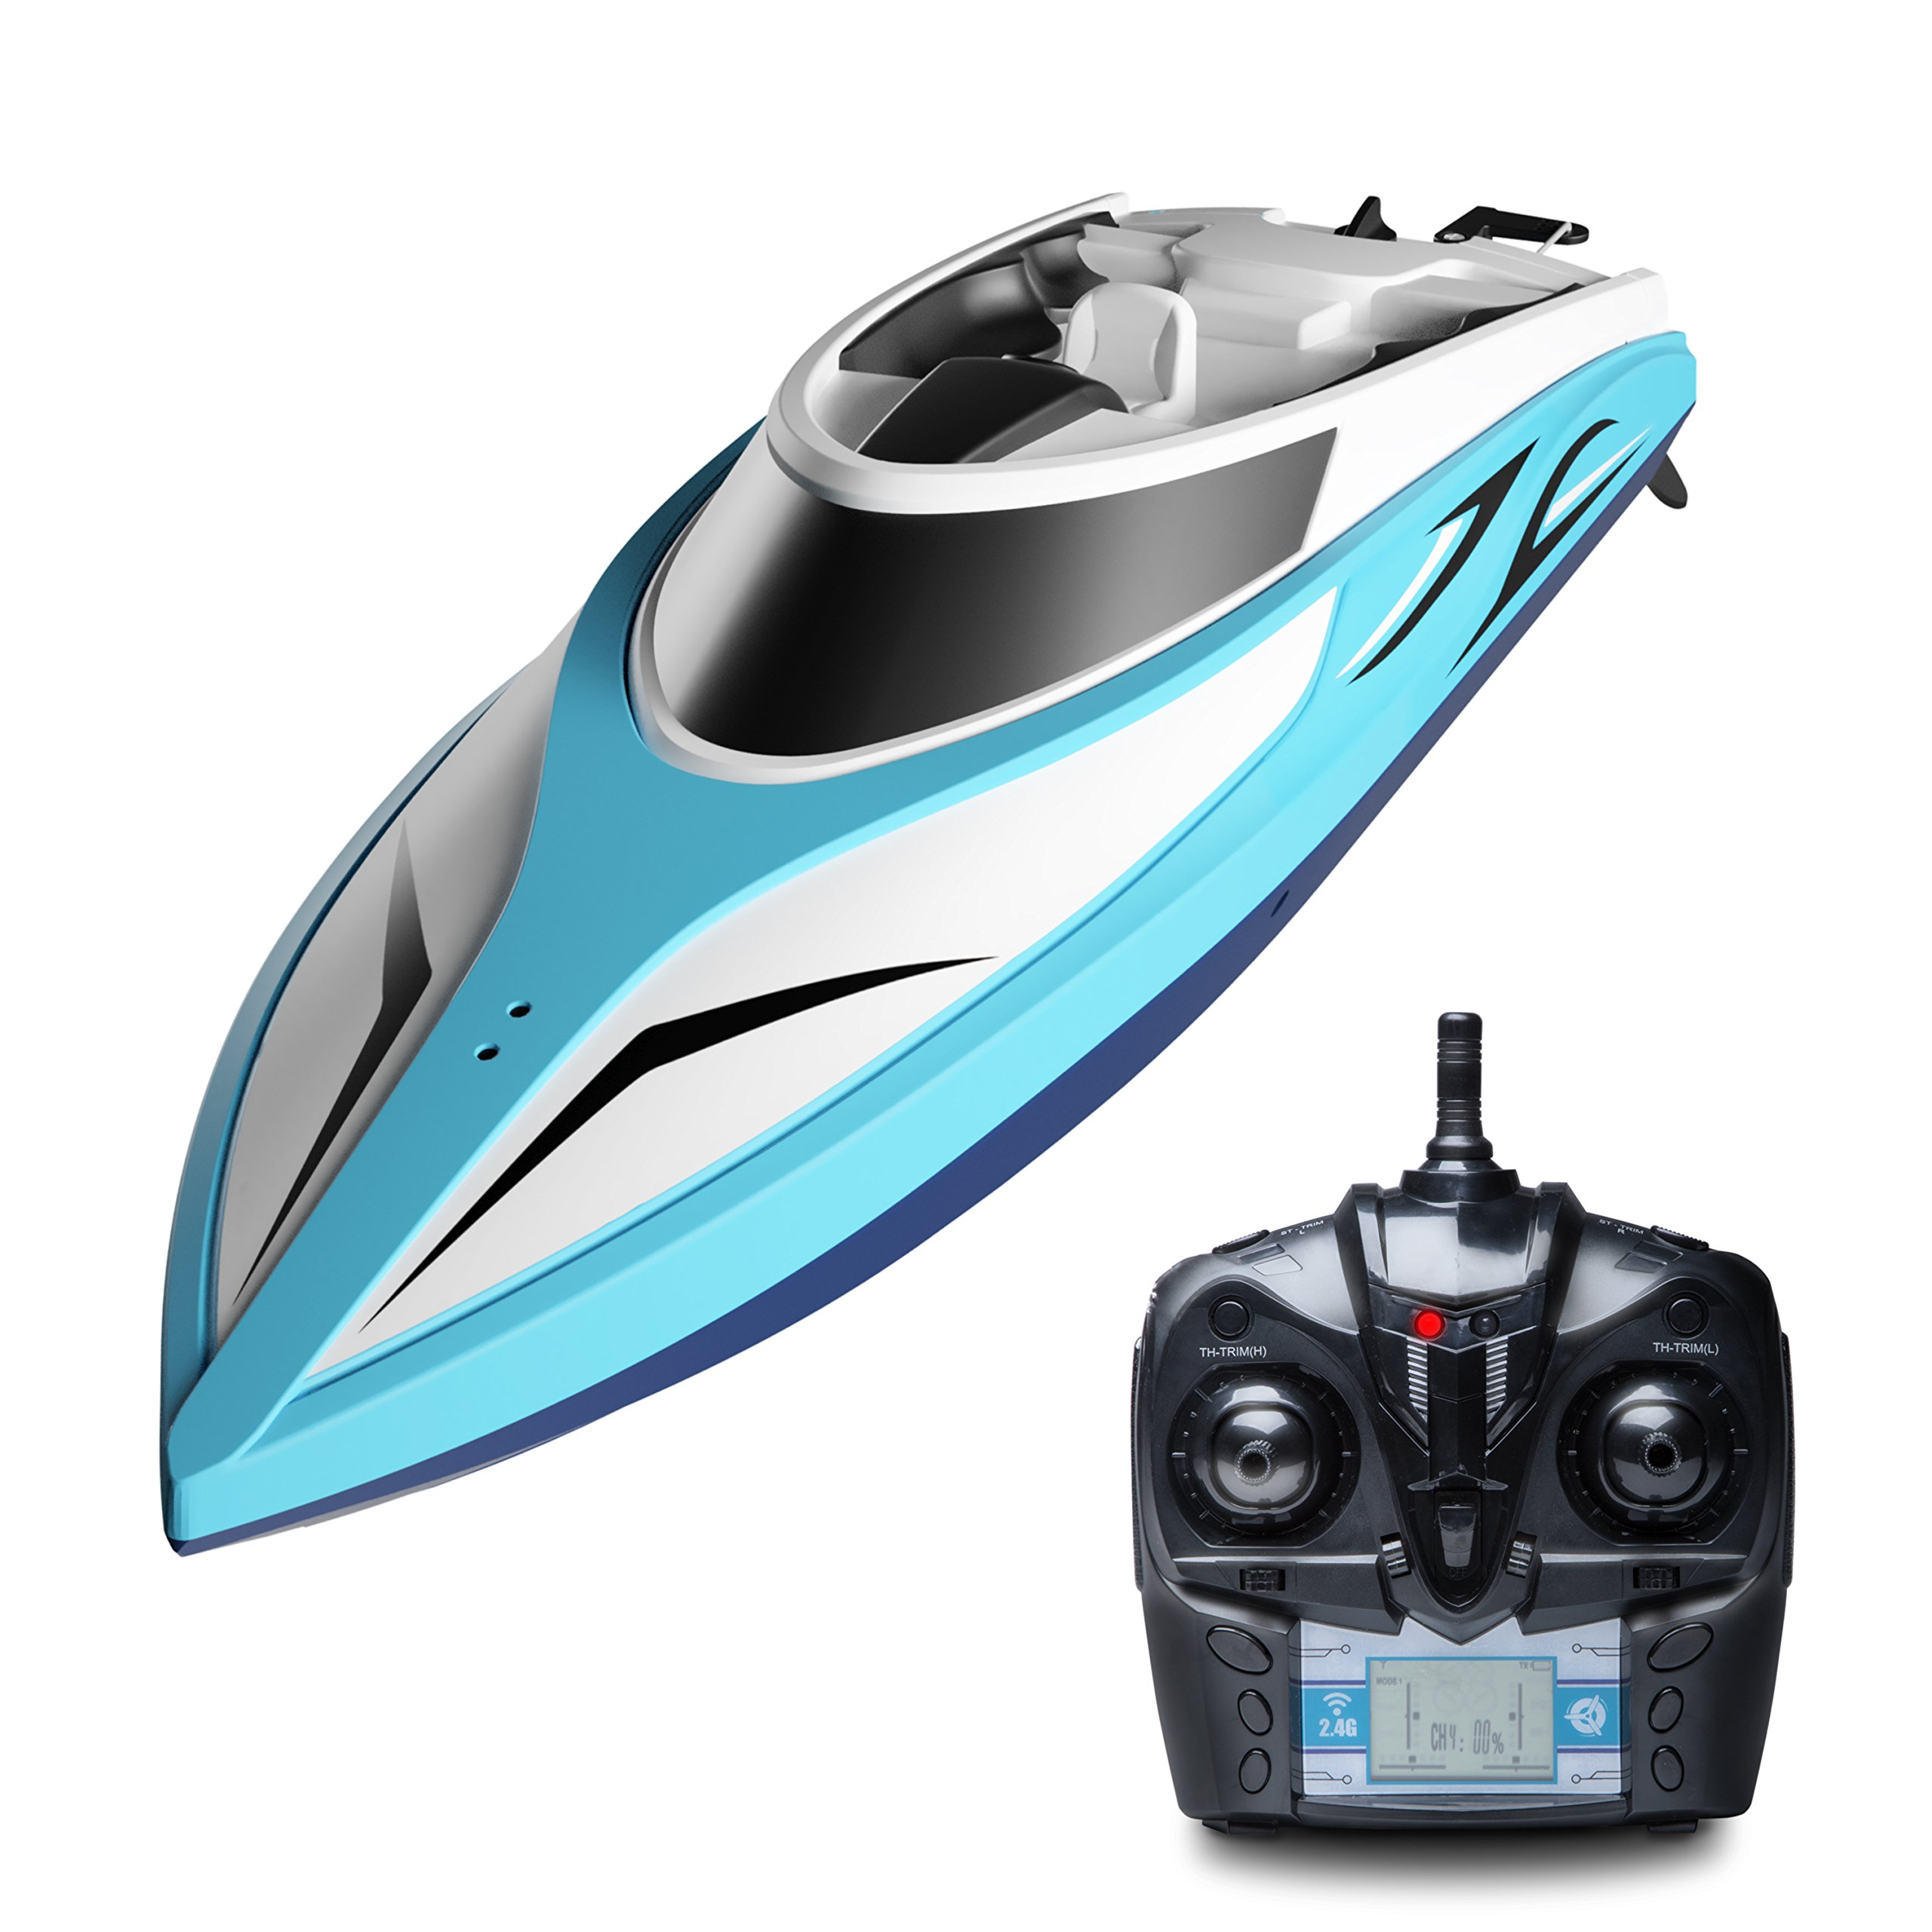 """Force1 RC Boat Pool Toys - """"H102 Velocity"""" High Speed Remote Control Boat and Rechargeable Battery + Toy Boat Capsize Recovery for Fast RC Boat Racing"""